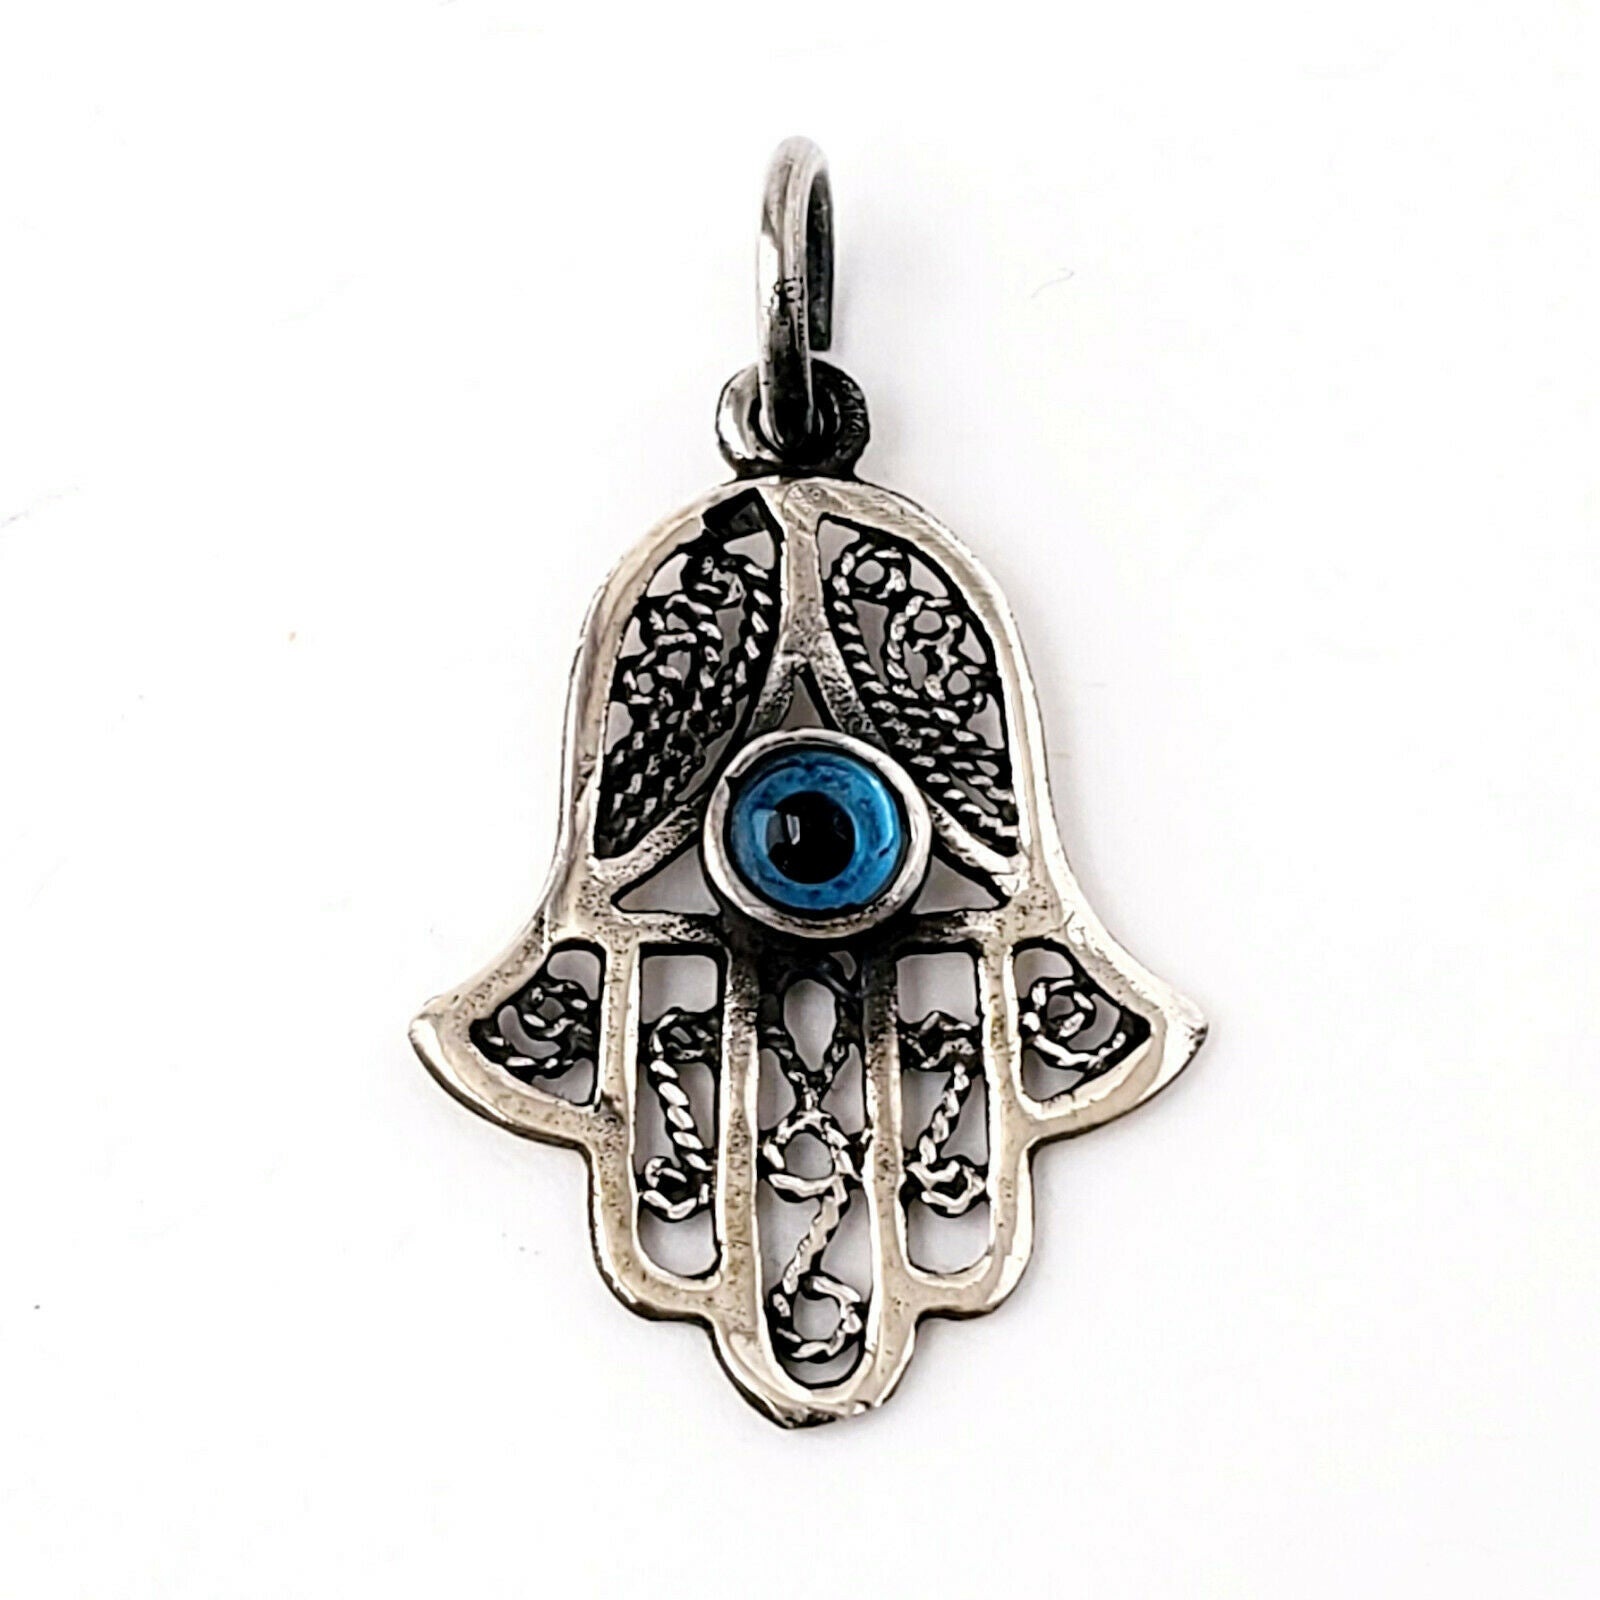 Hamsa Protection Charm 925 Sterling Silver Pendant Evil Eye Luck Hand of Fatima